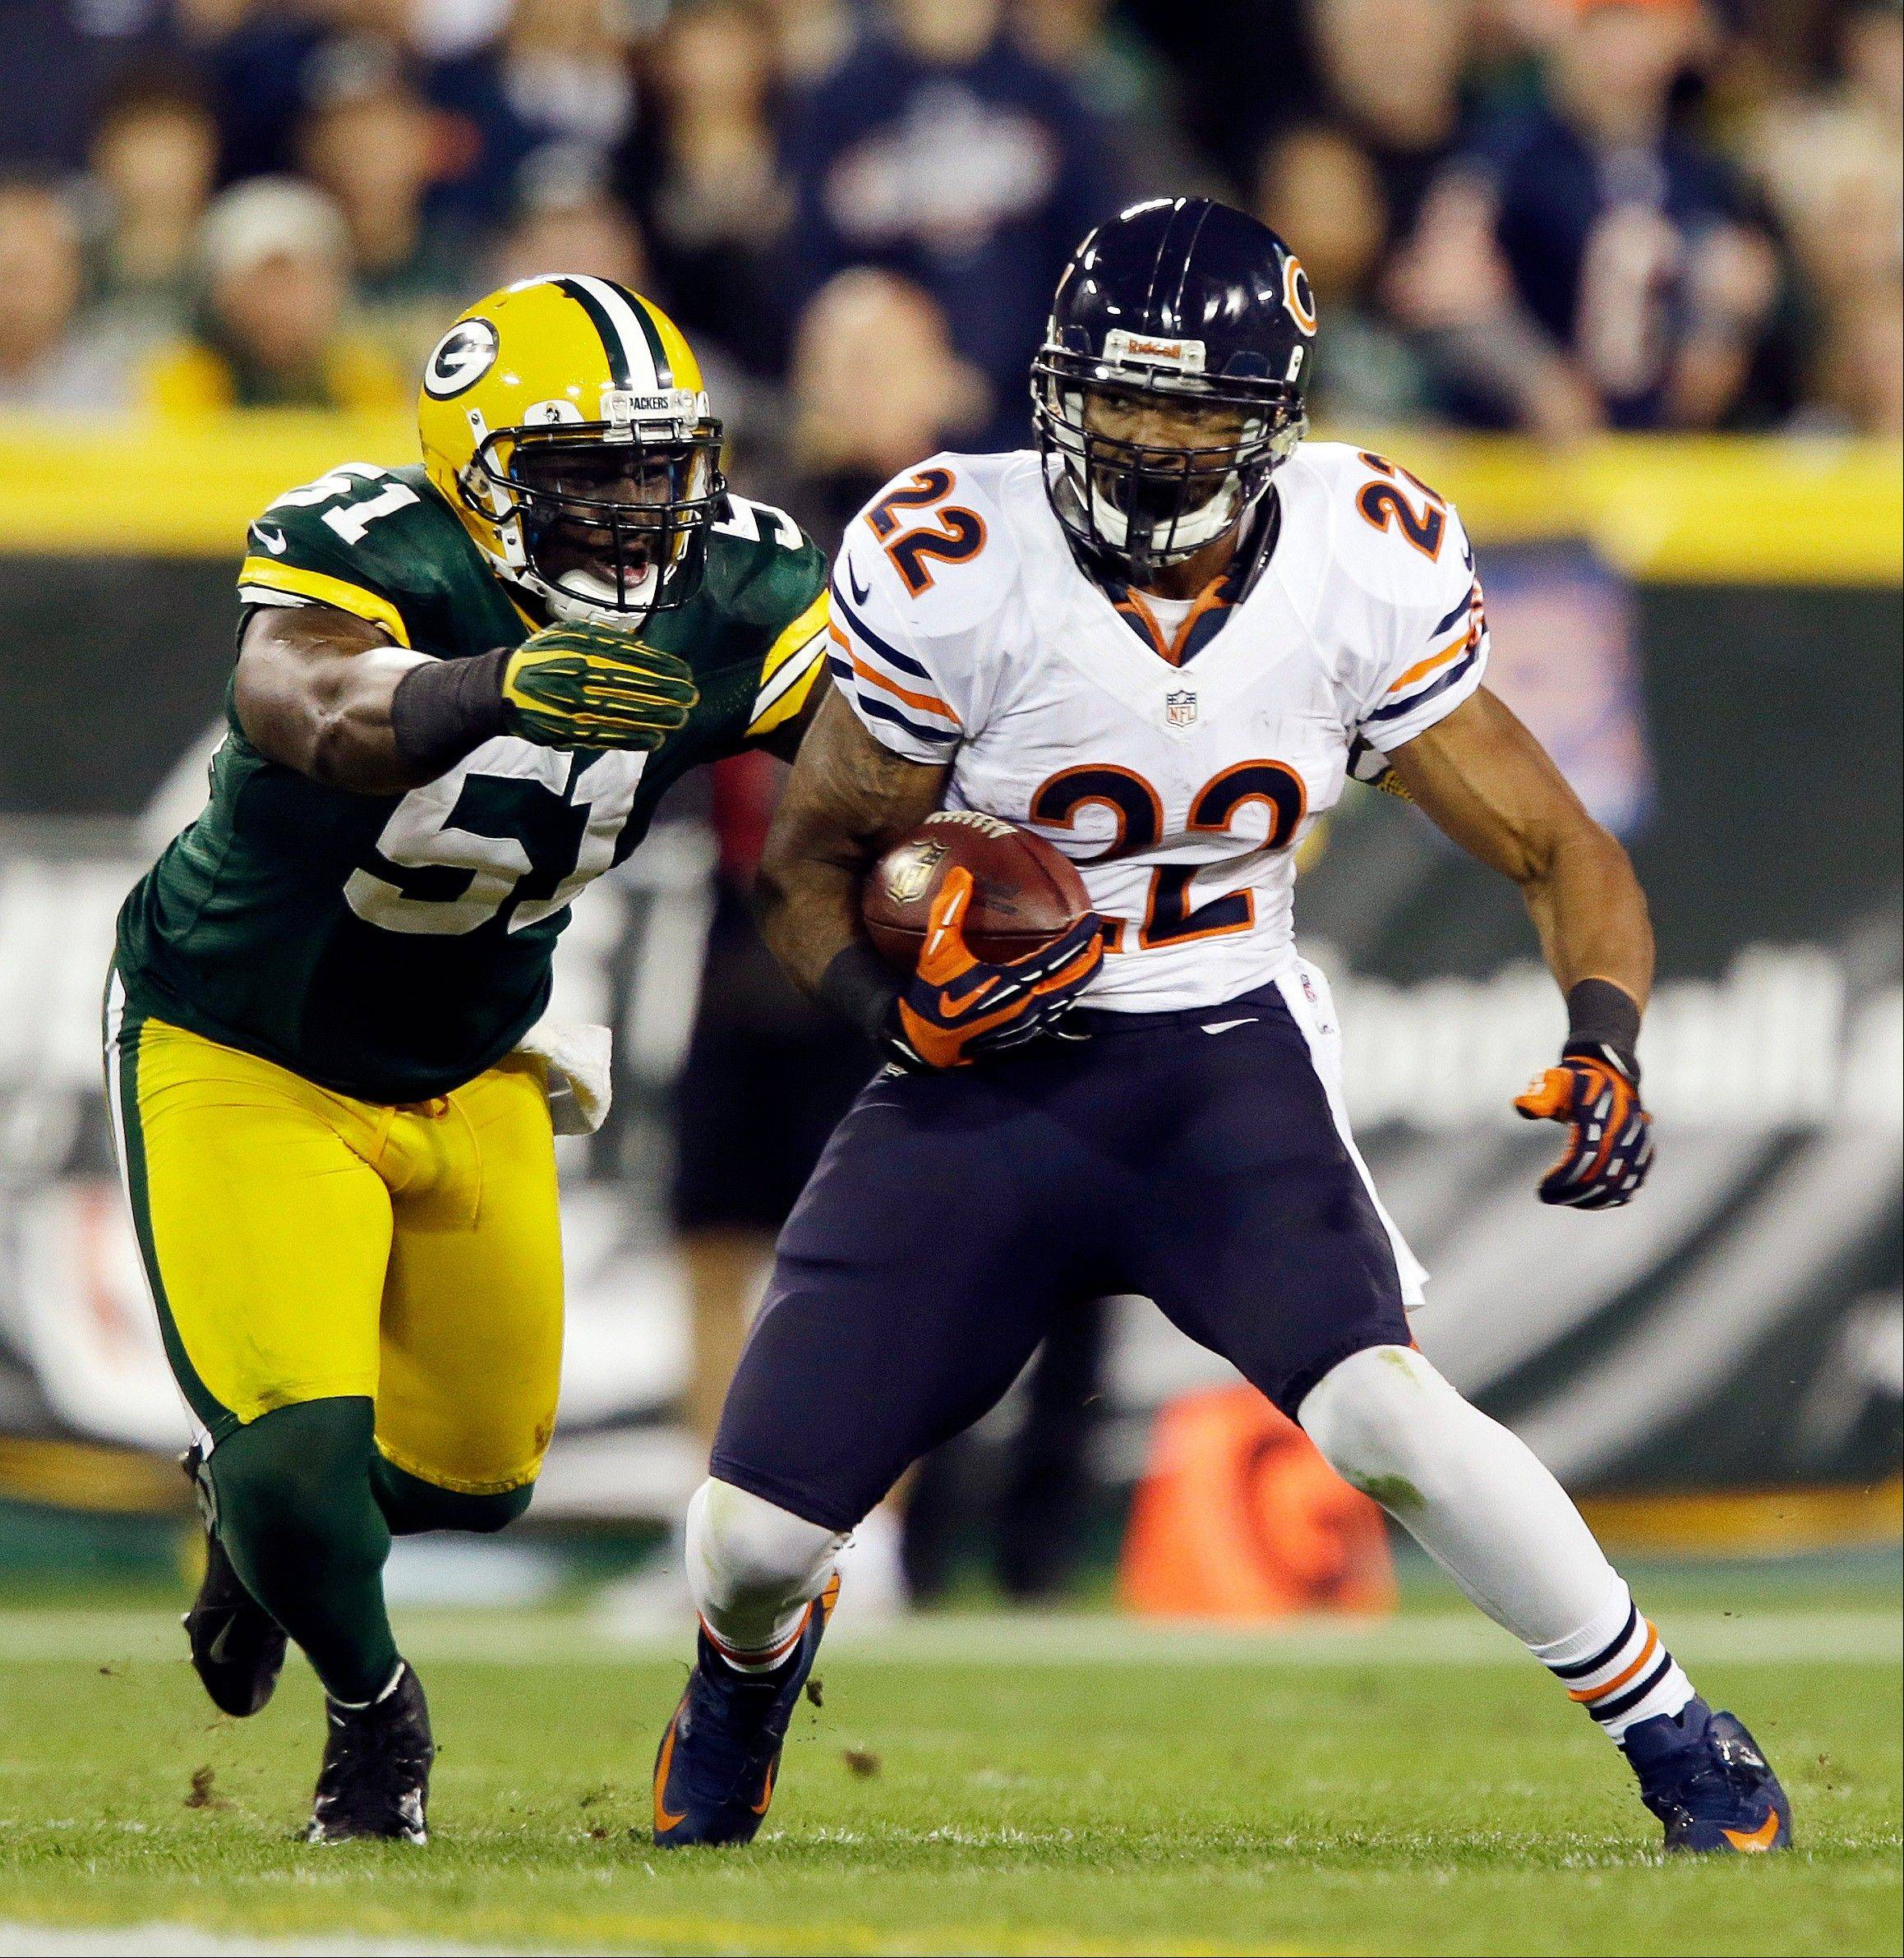 Bears RB Matt Forte (22) tries to break away from Green Bay�s D.J. Smith when the teams met in September. Forte has averaged just 2.9 yards per carry since the Bears were 7-1.